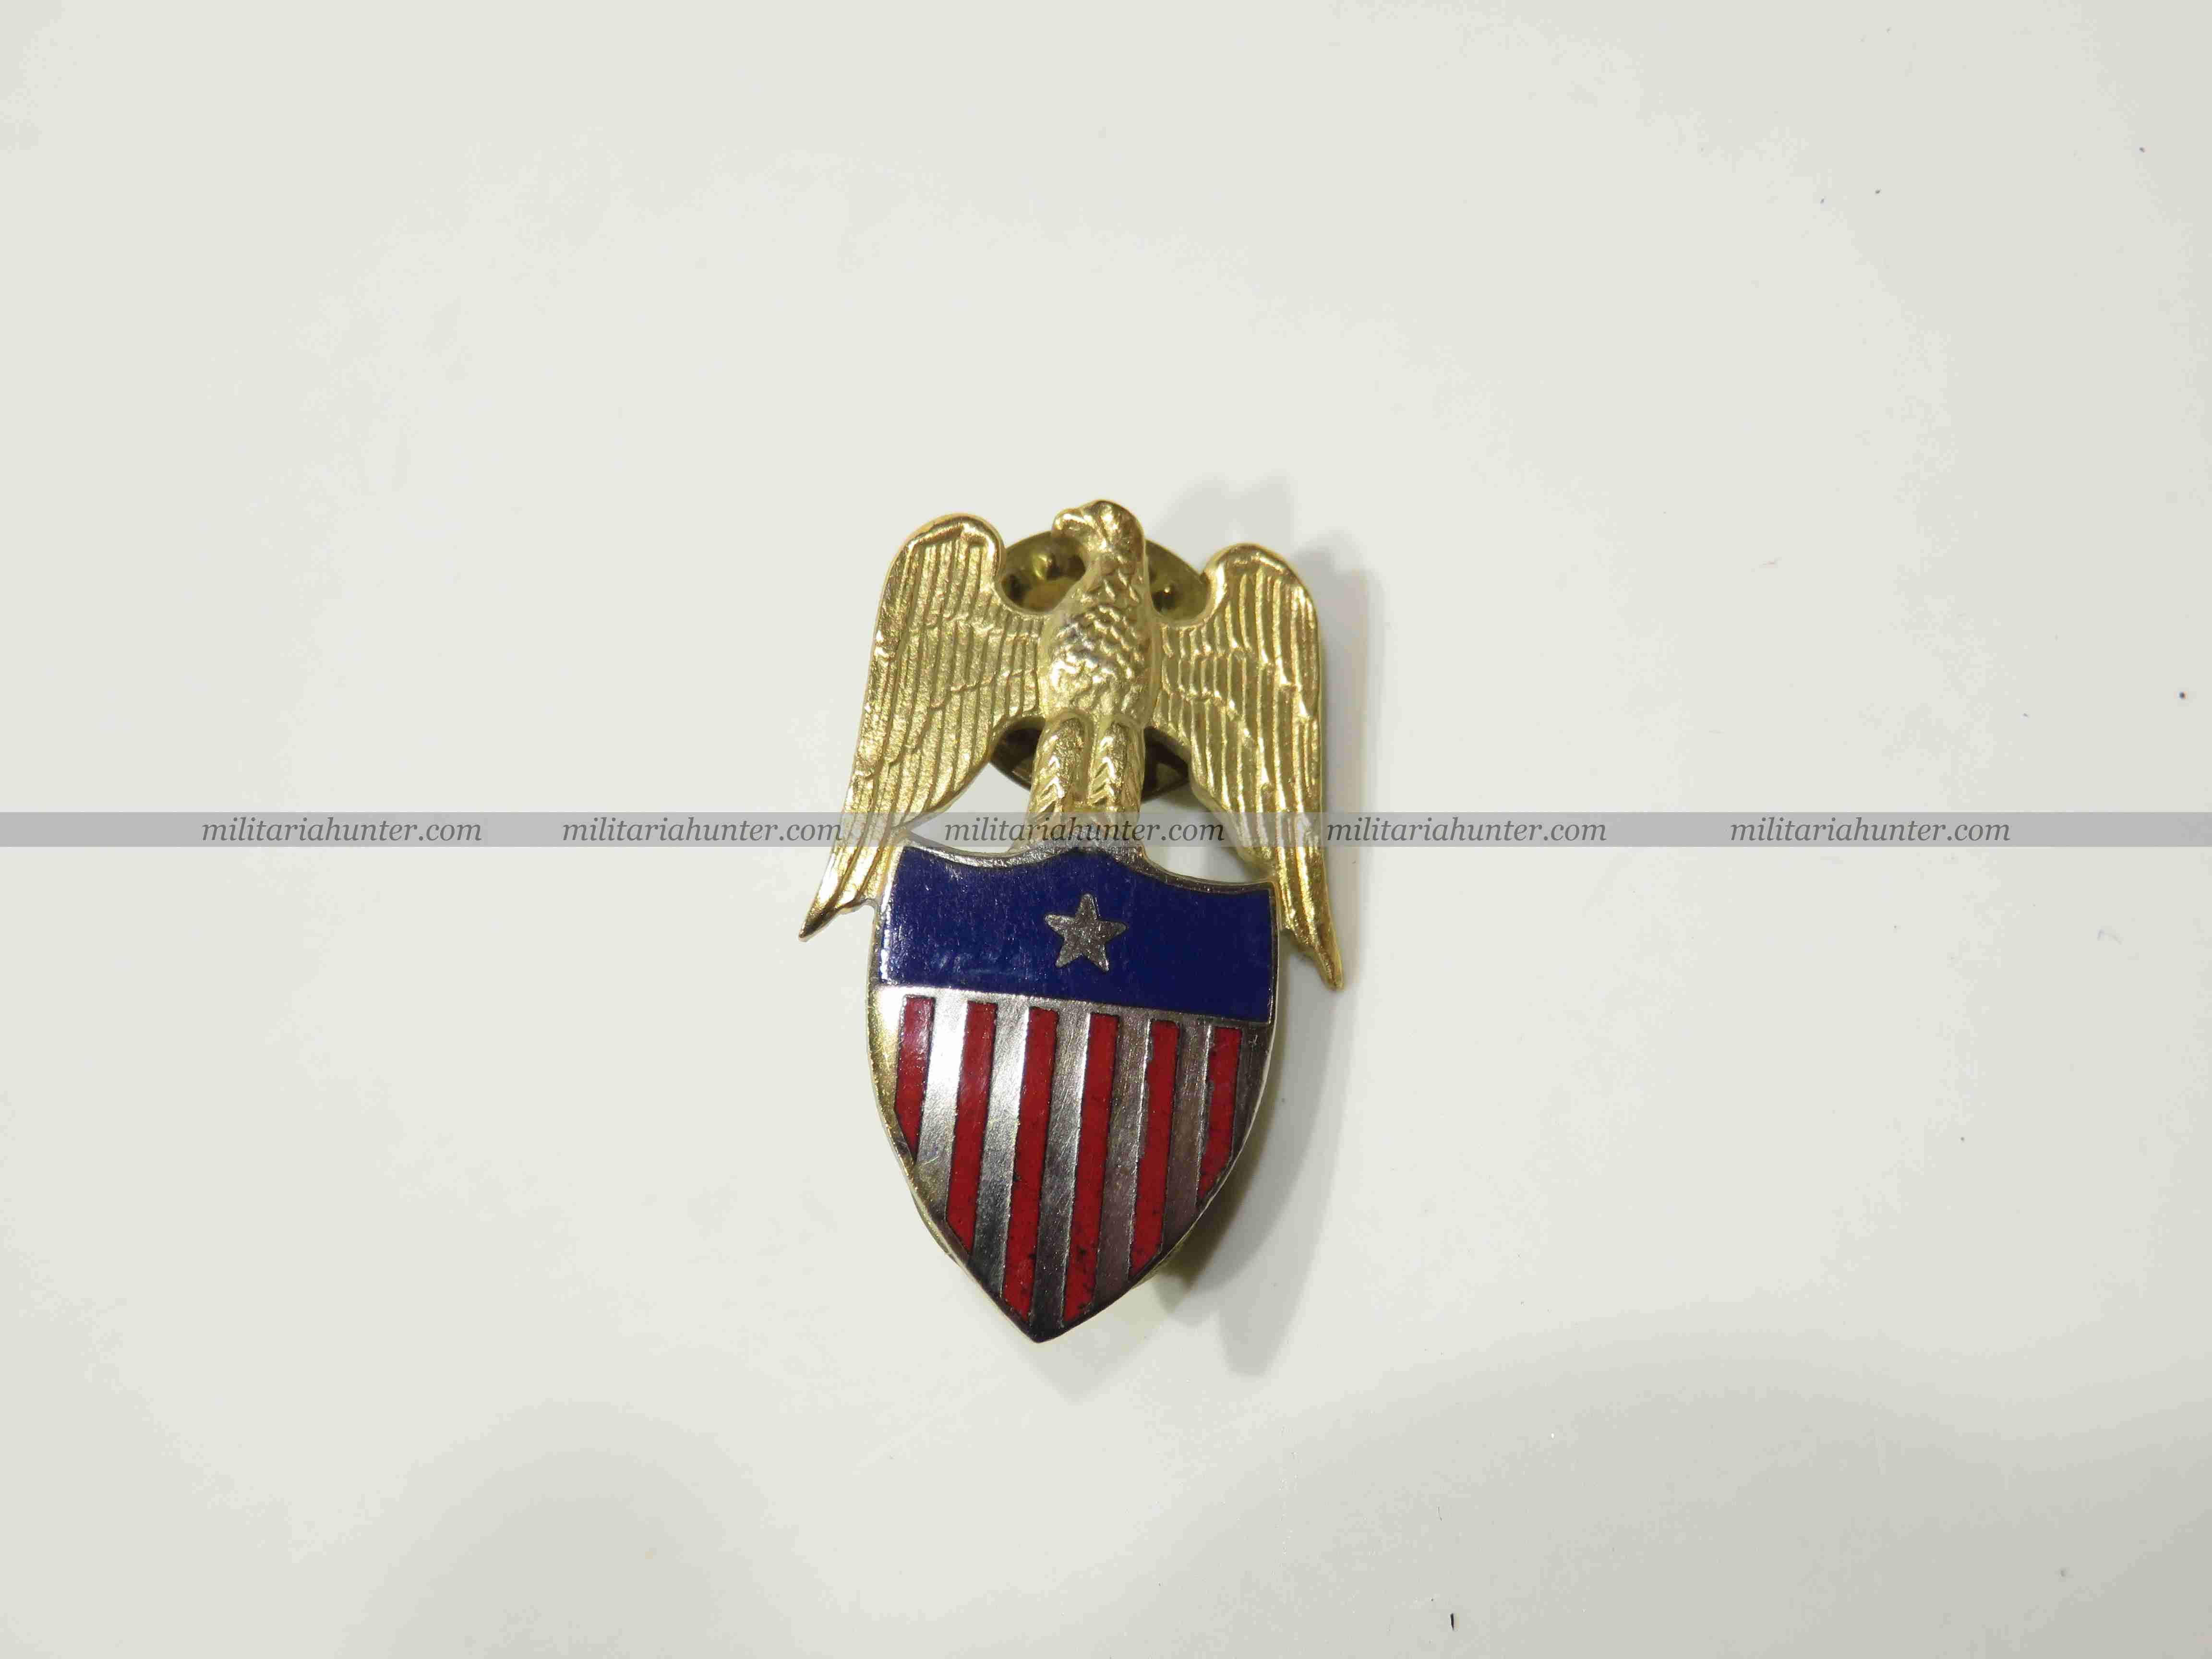 militaria : US Aide to Brigadier General collar badge insignia